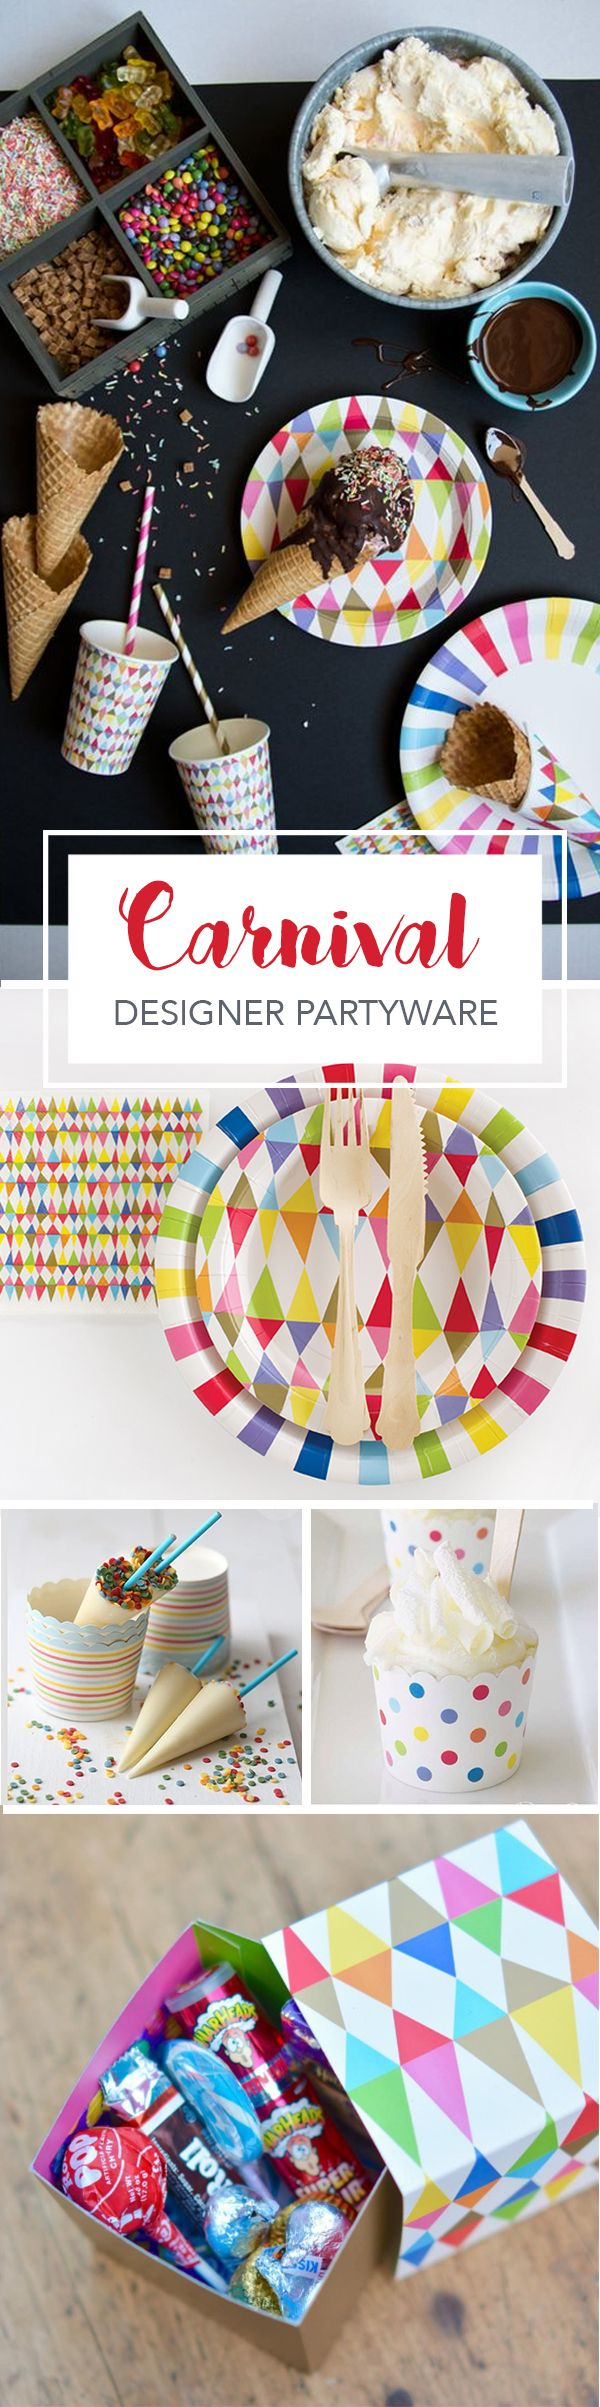 Perfect collection for the next carnival or circus themed party. Our partyware is made from sturdy, heavy board stock in a quality matte finish. PaperEskimo.com